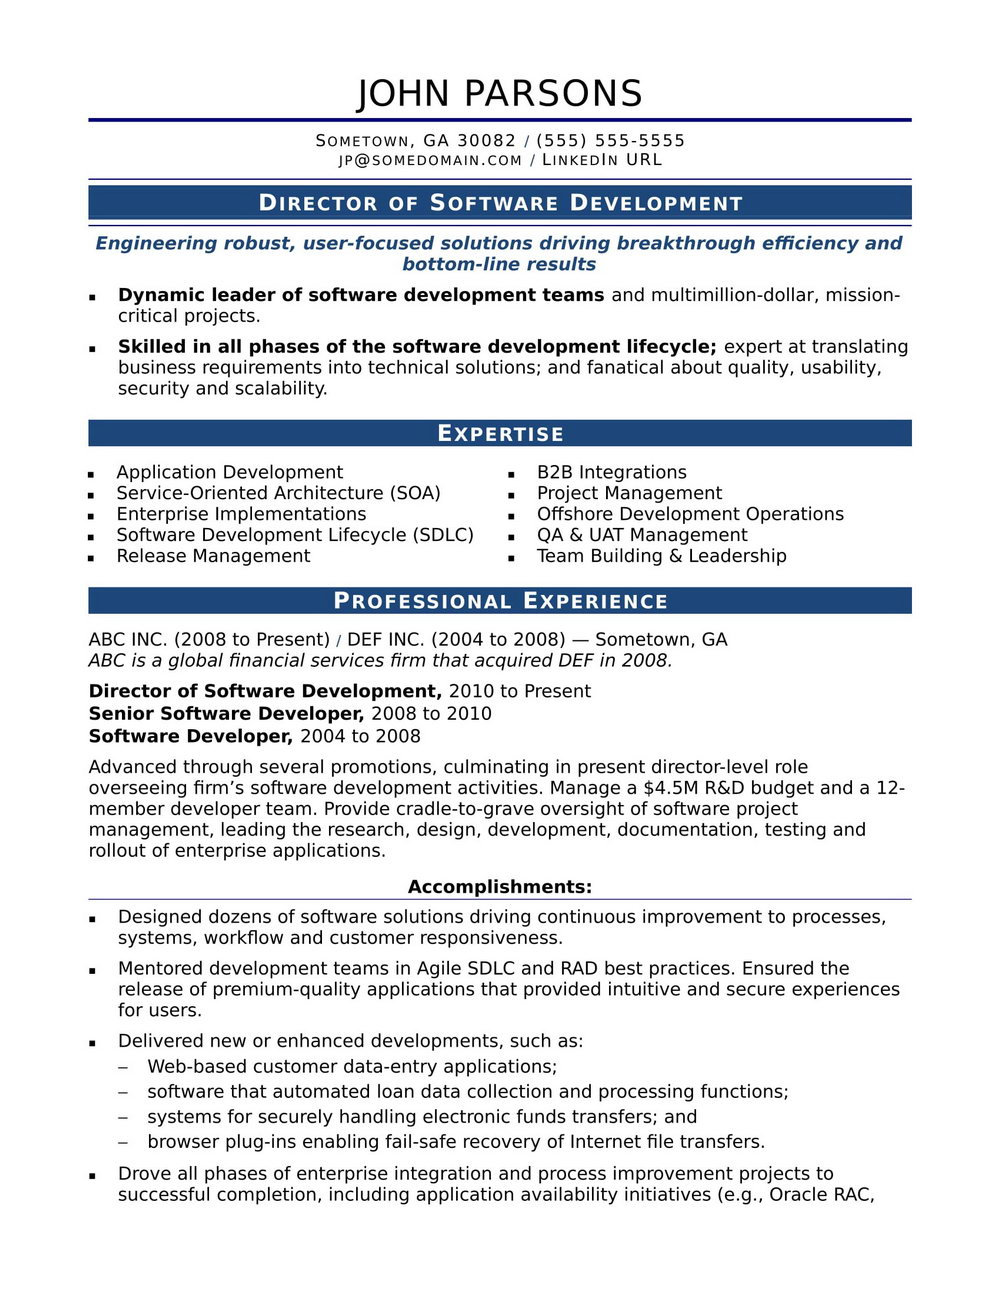 Resume Format Word For Experienced Free Download